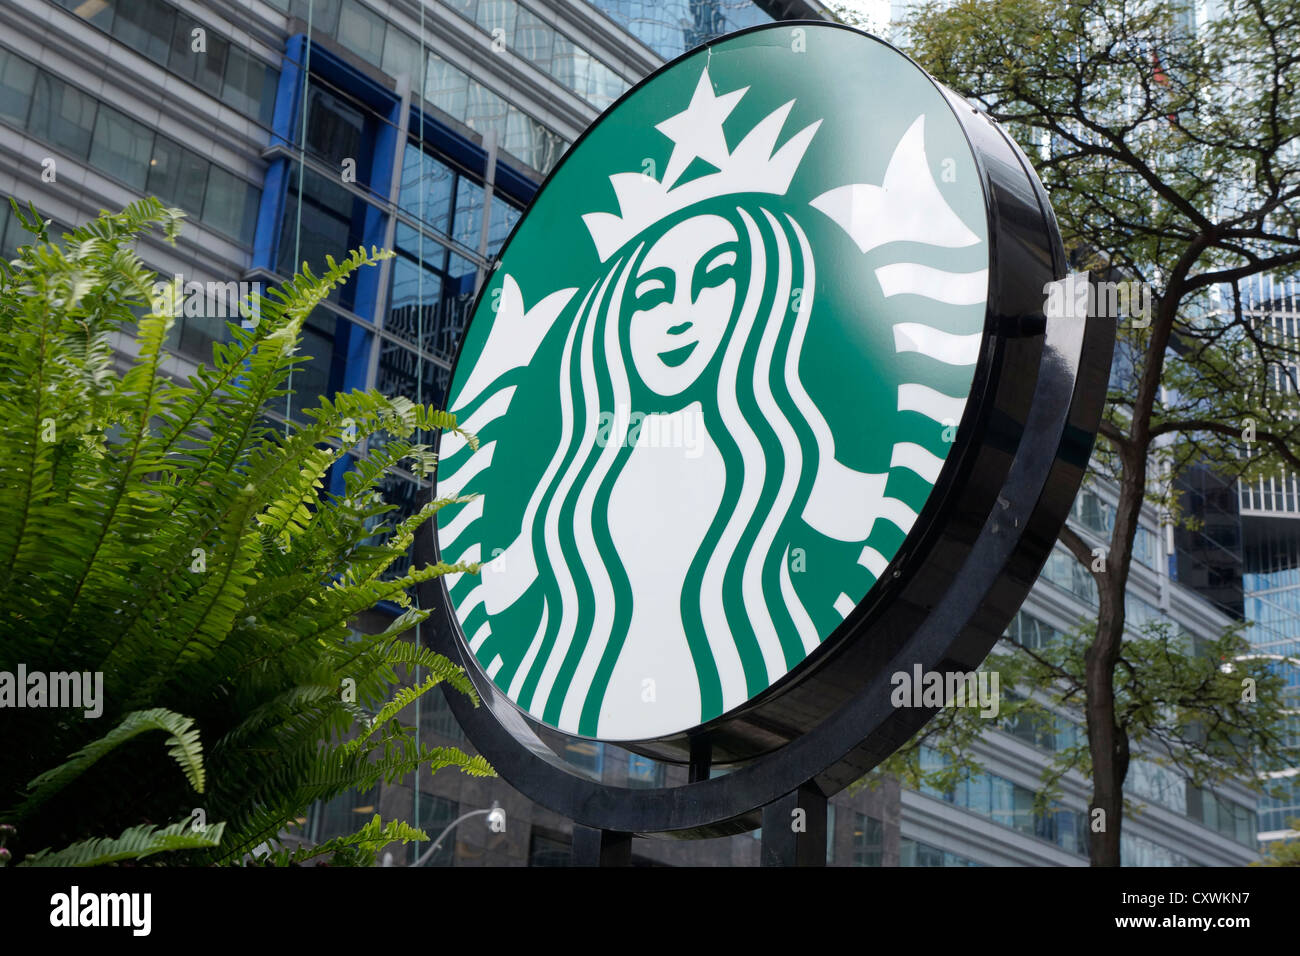 Starbucks Sign, Logo outside - Stock Image